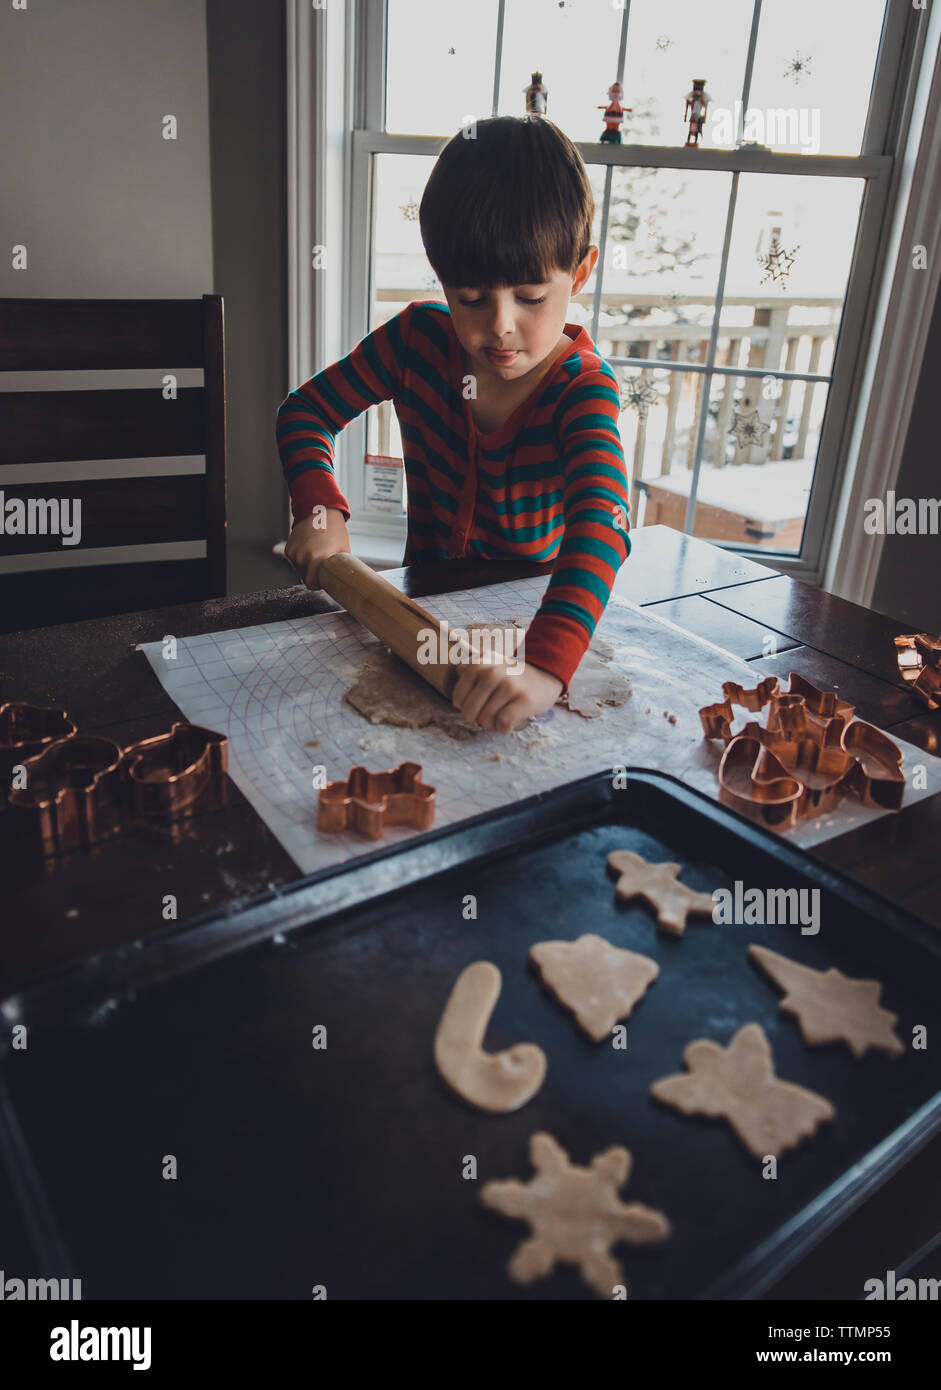 Boy rolling cookie dough on table during Christmas at home - Stock Image